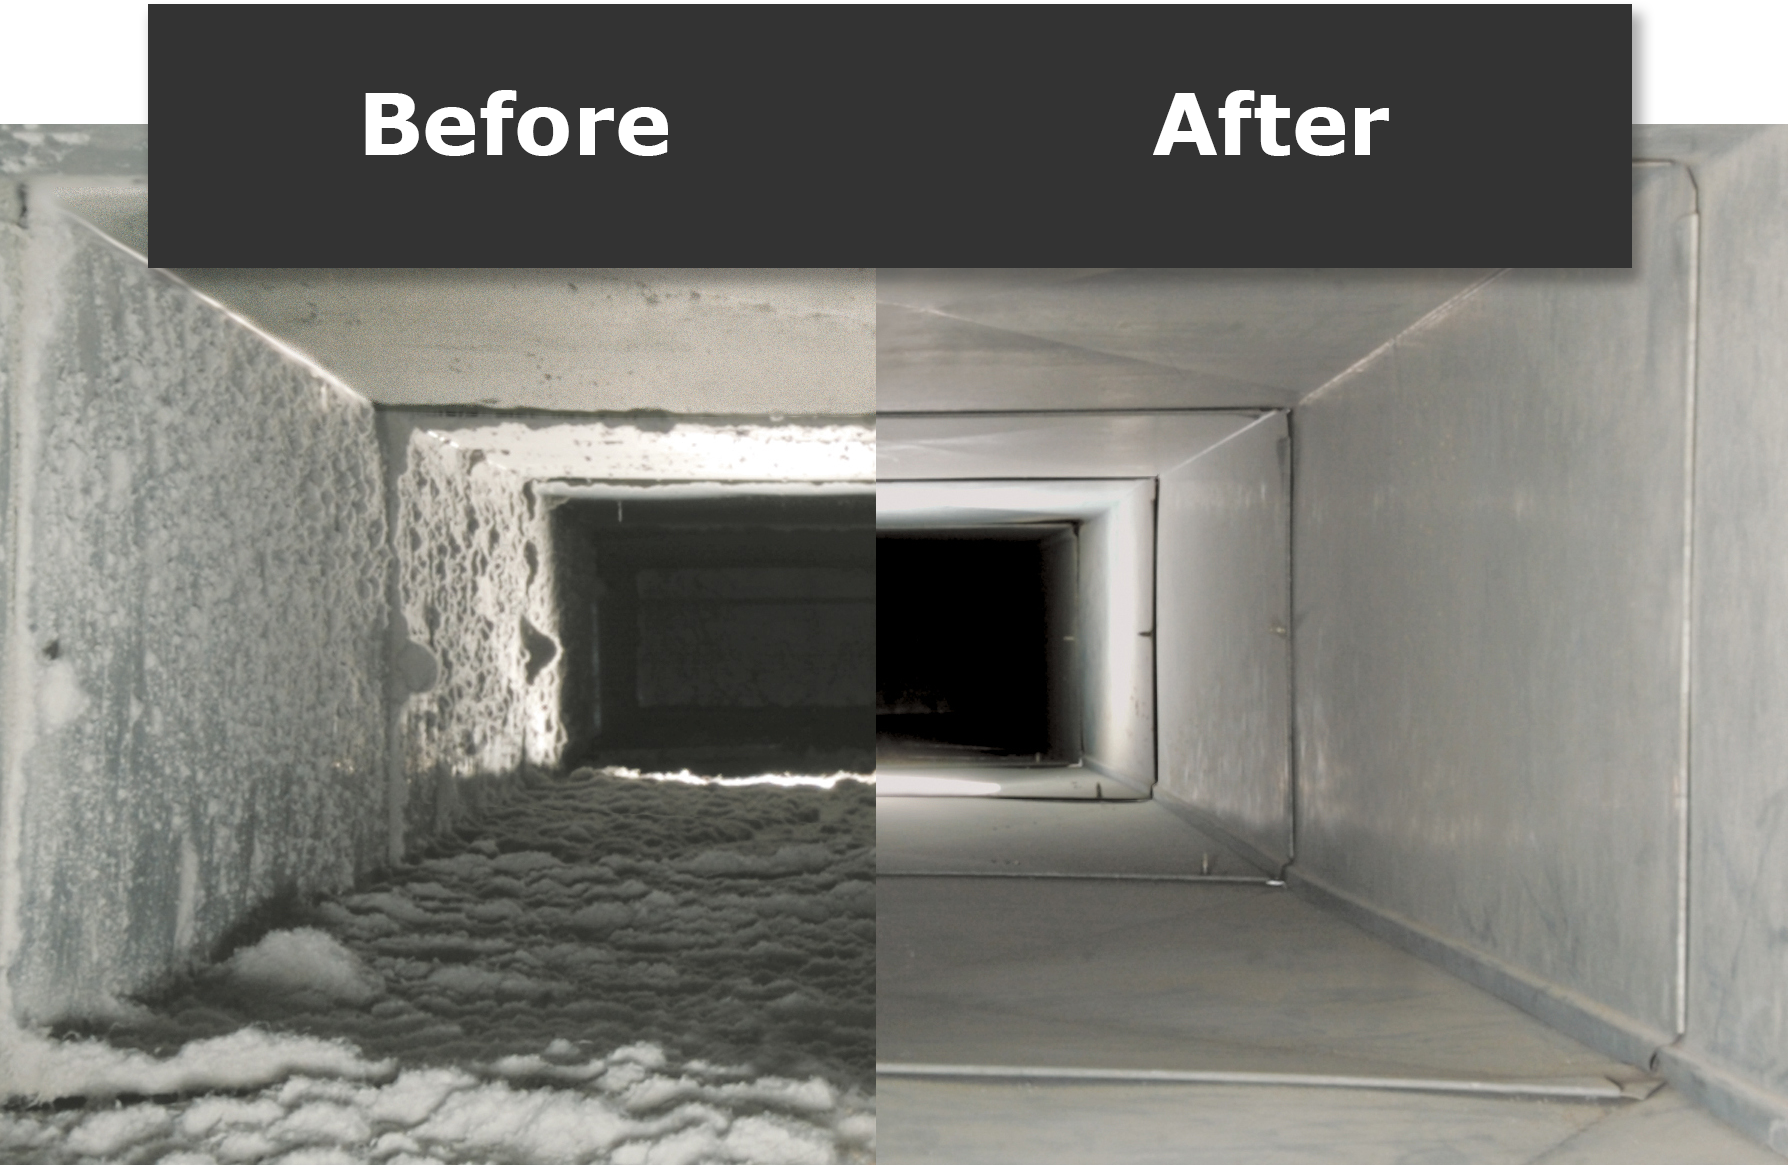 Residential Air Duct Cleaning Reno Nv Rhp Mechanical